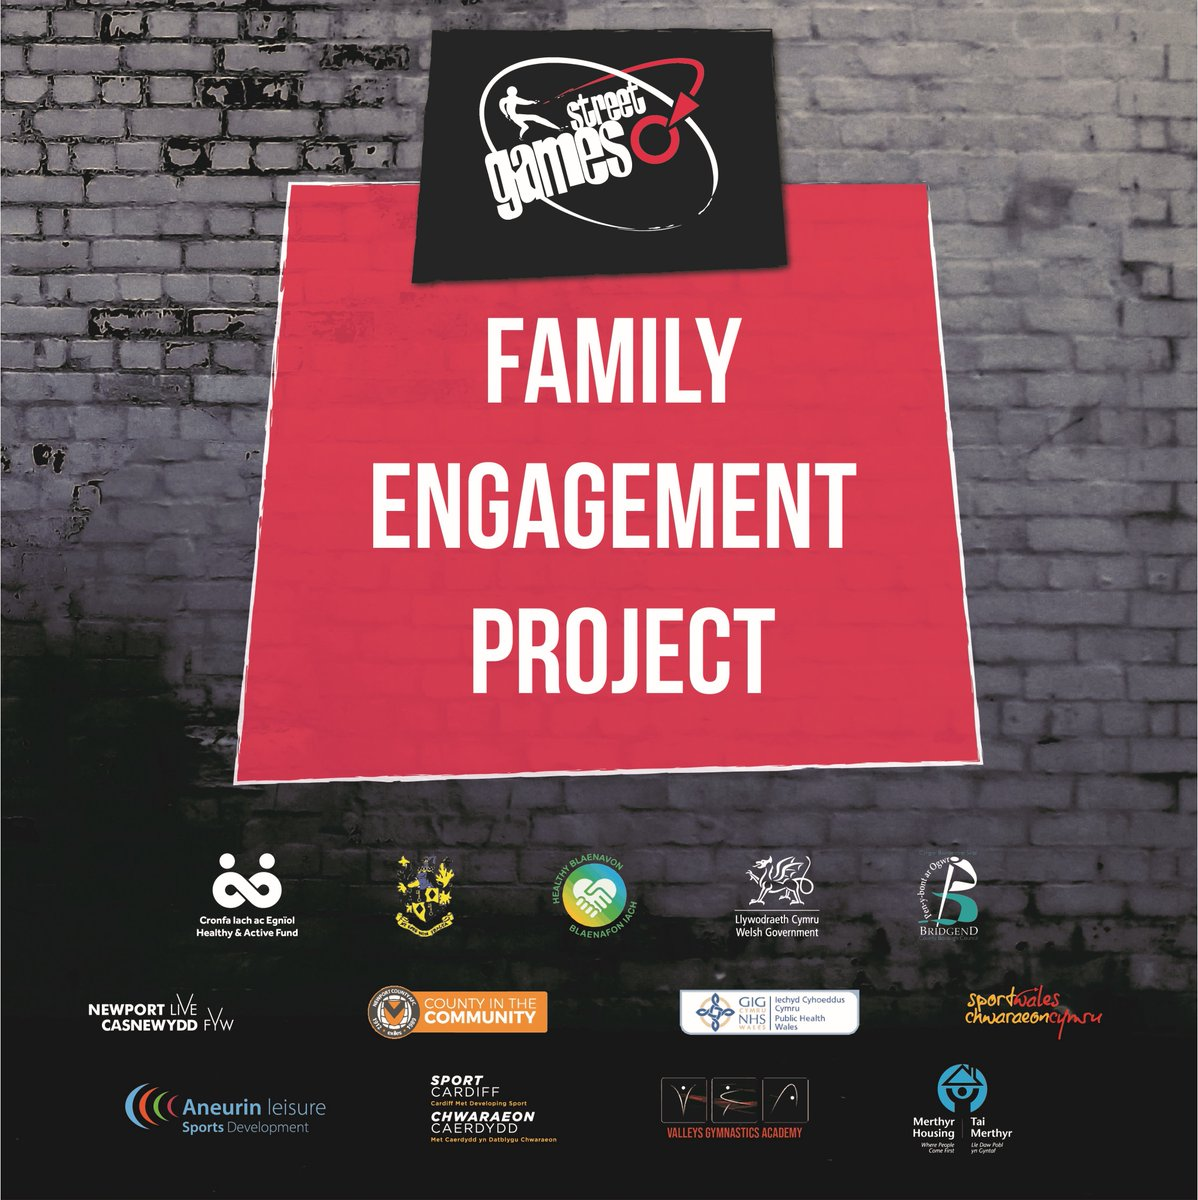 Weve been working with great community orgs across South Wales to deliver a new engagement project, supporting families to live healthier, more active lives: streetgames.org/news/new-engag… To learn more about the project read our new report below! 👇 streetgames.org/Handlers/Downl…